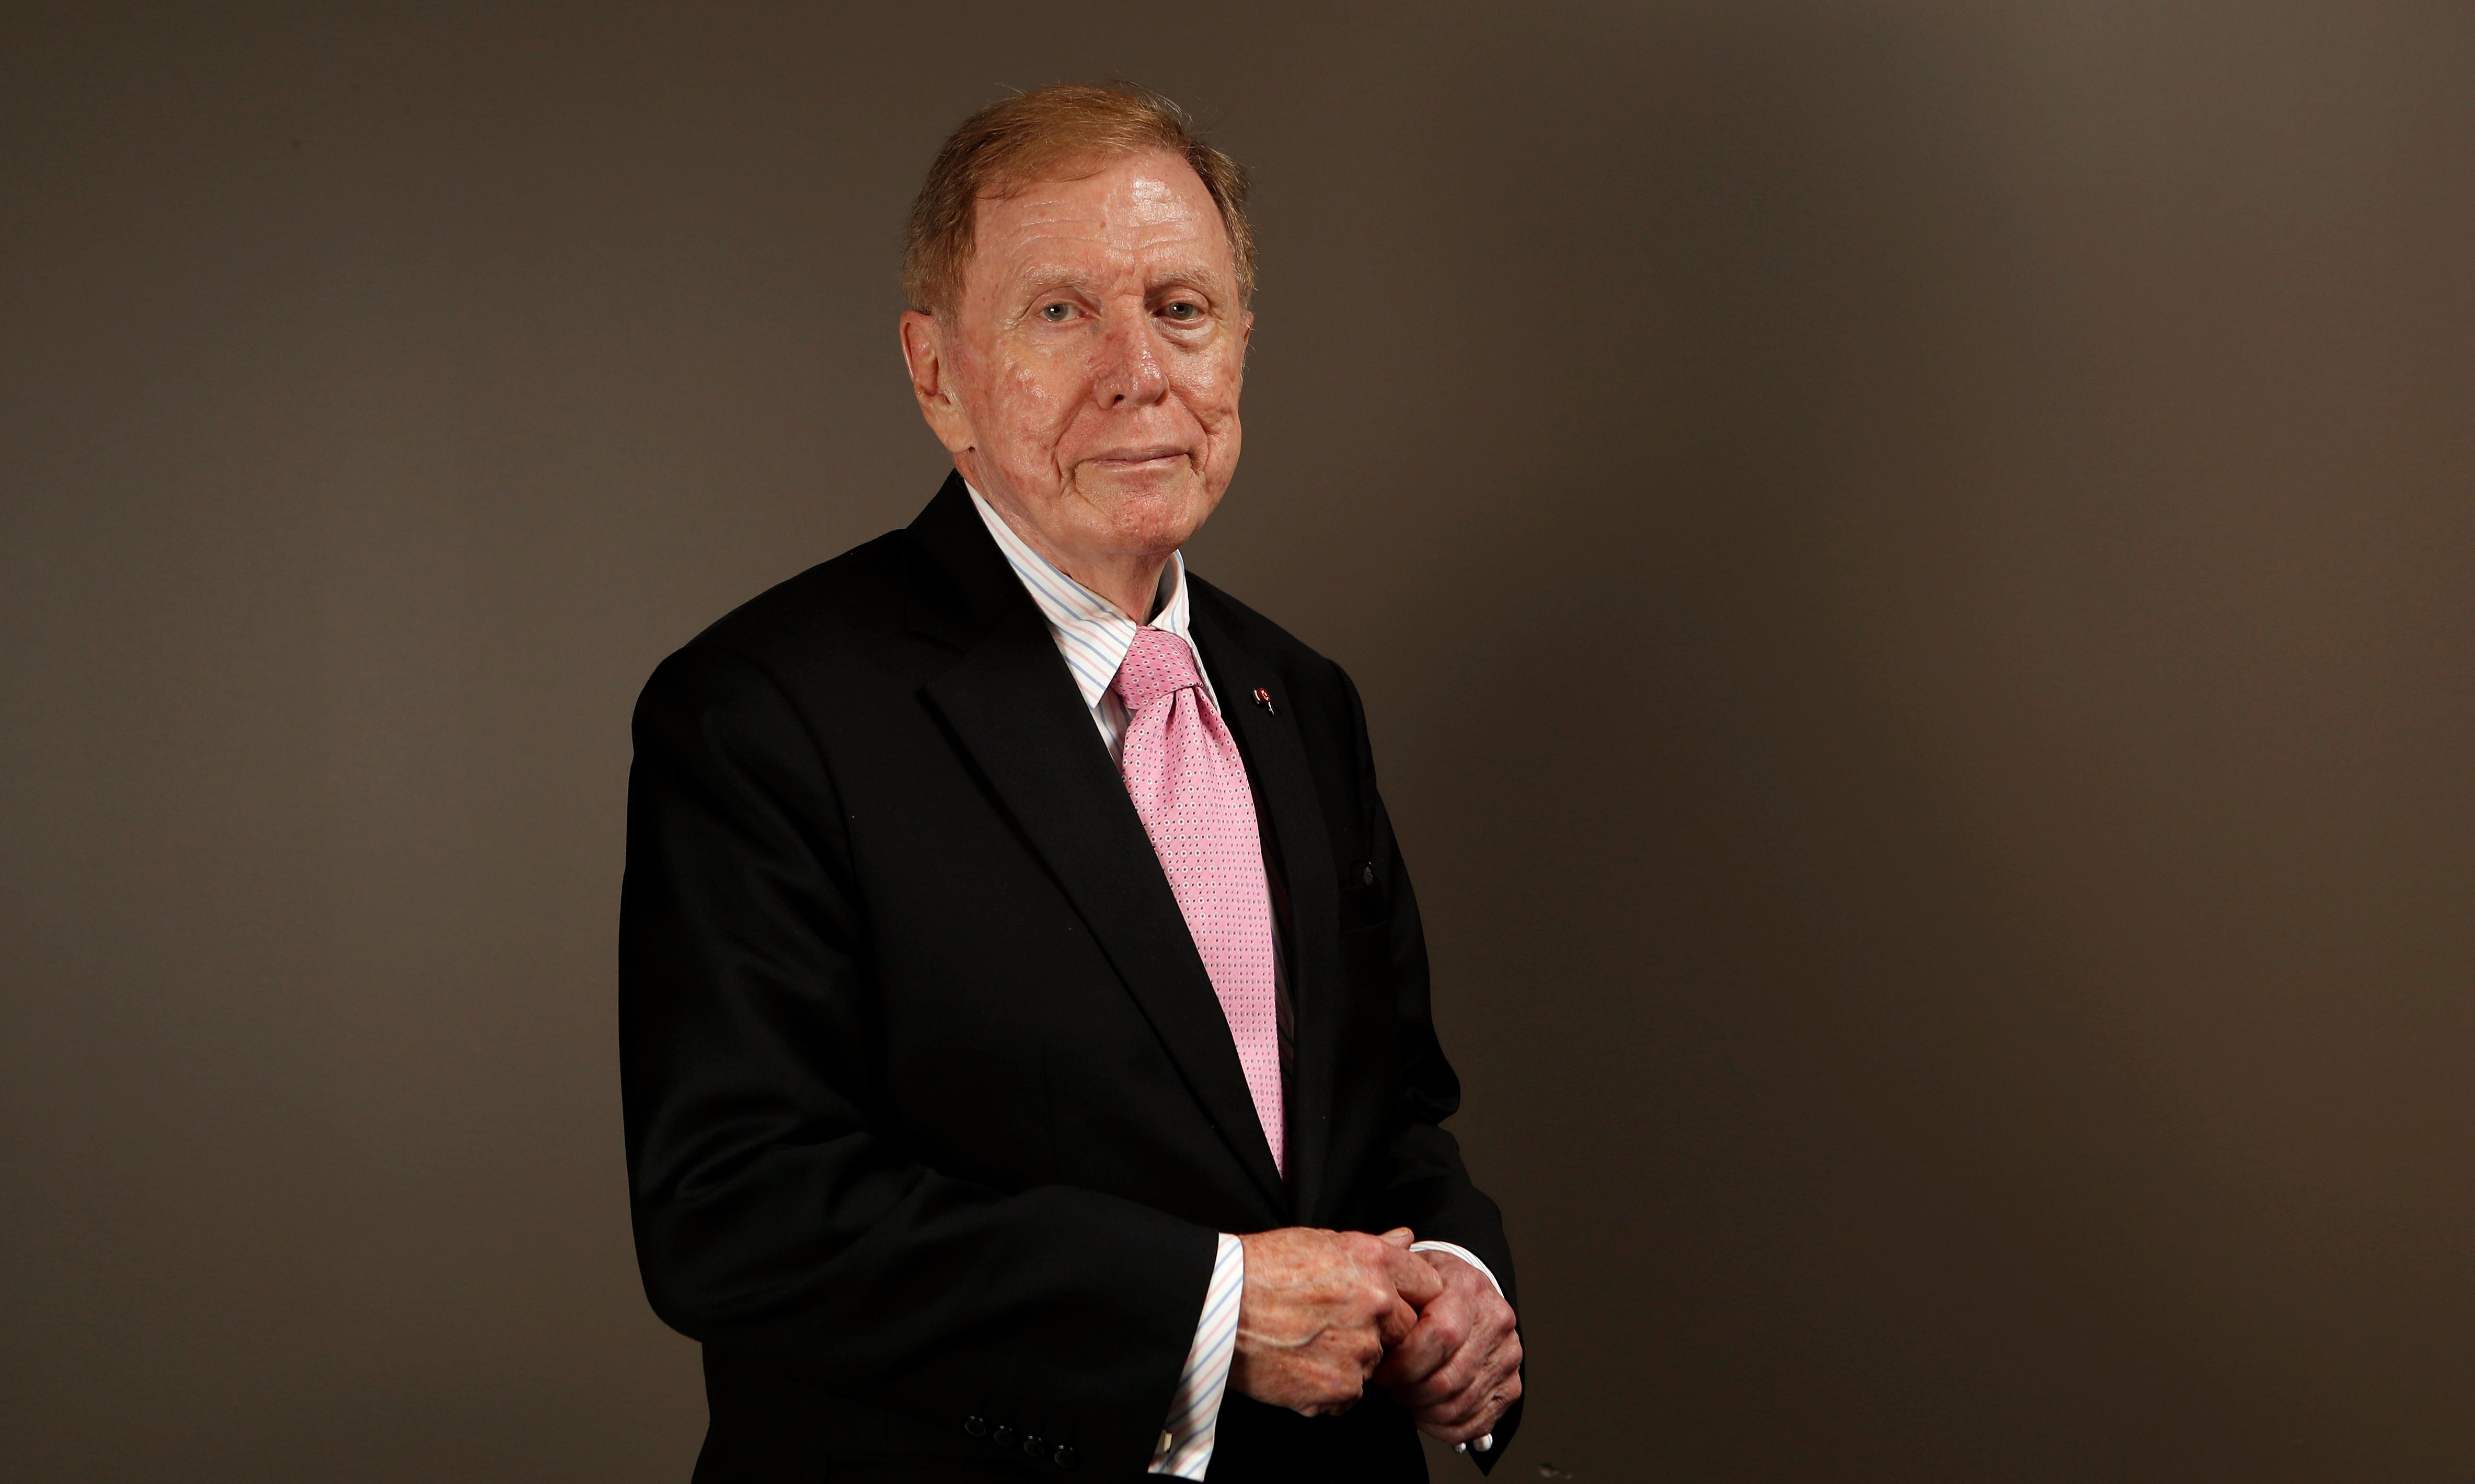 Religious freedom bill 'will sustain nastiness and hostility', Michael Kirby warns